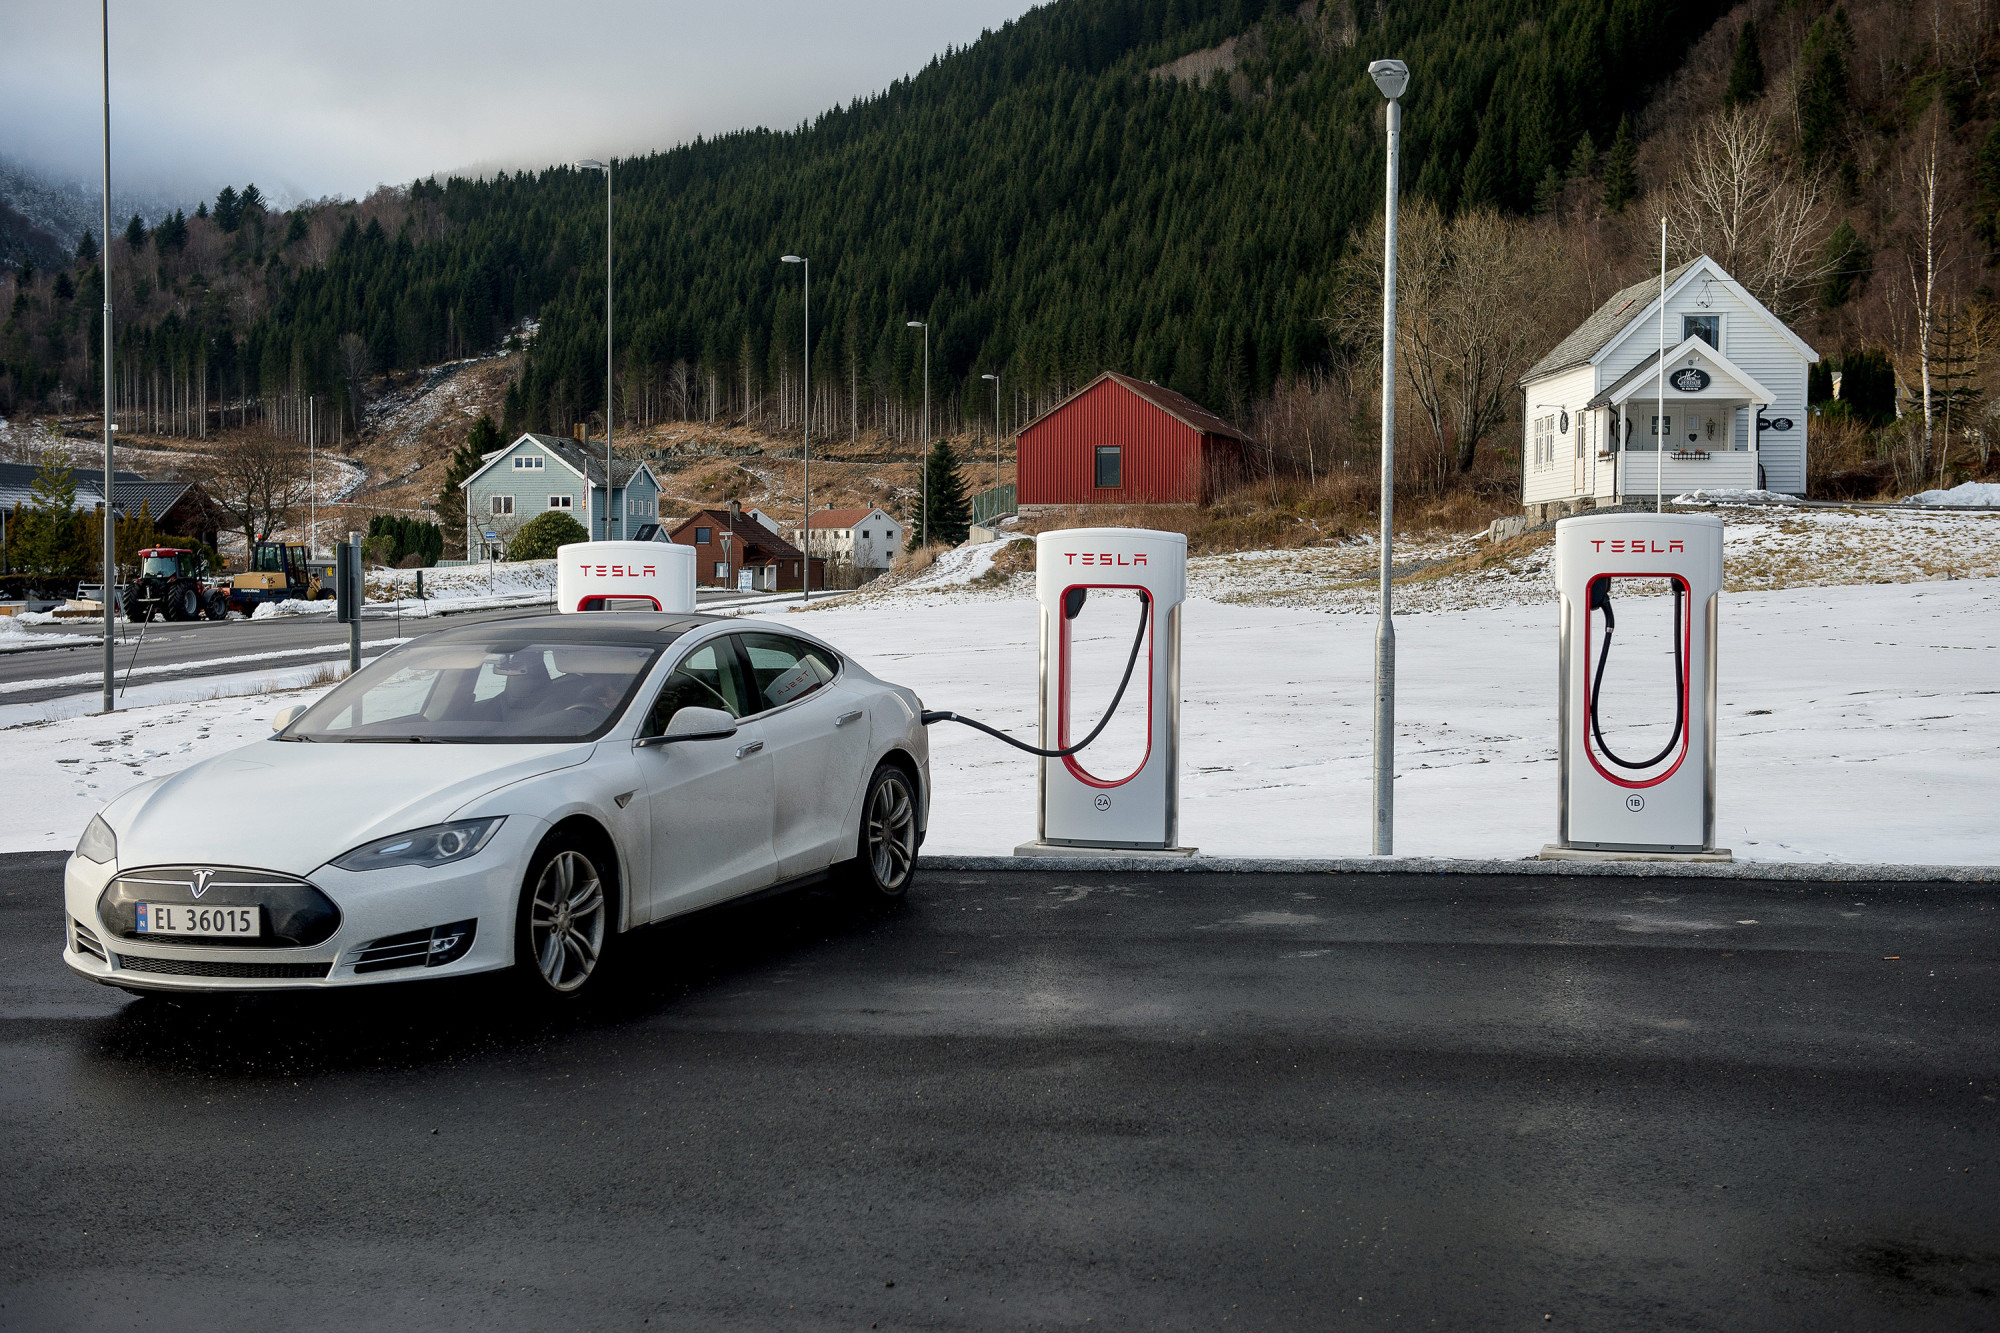 Tesla Record Pushes Norway's Share of Electric Car Sales to 42% - Bloomberg